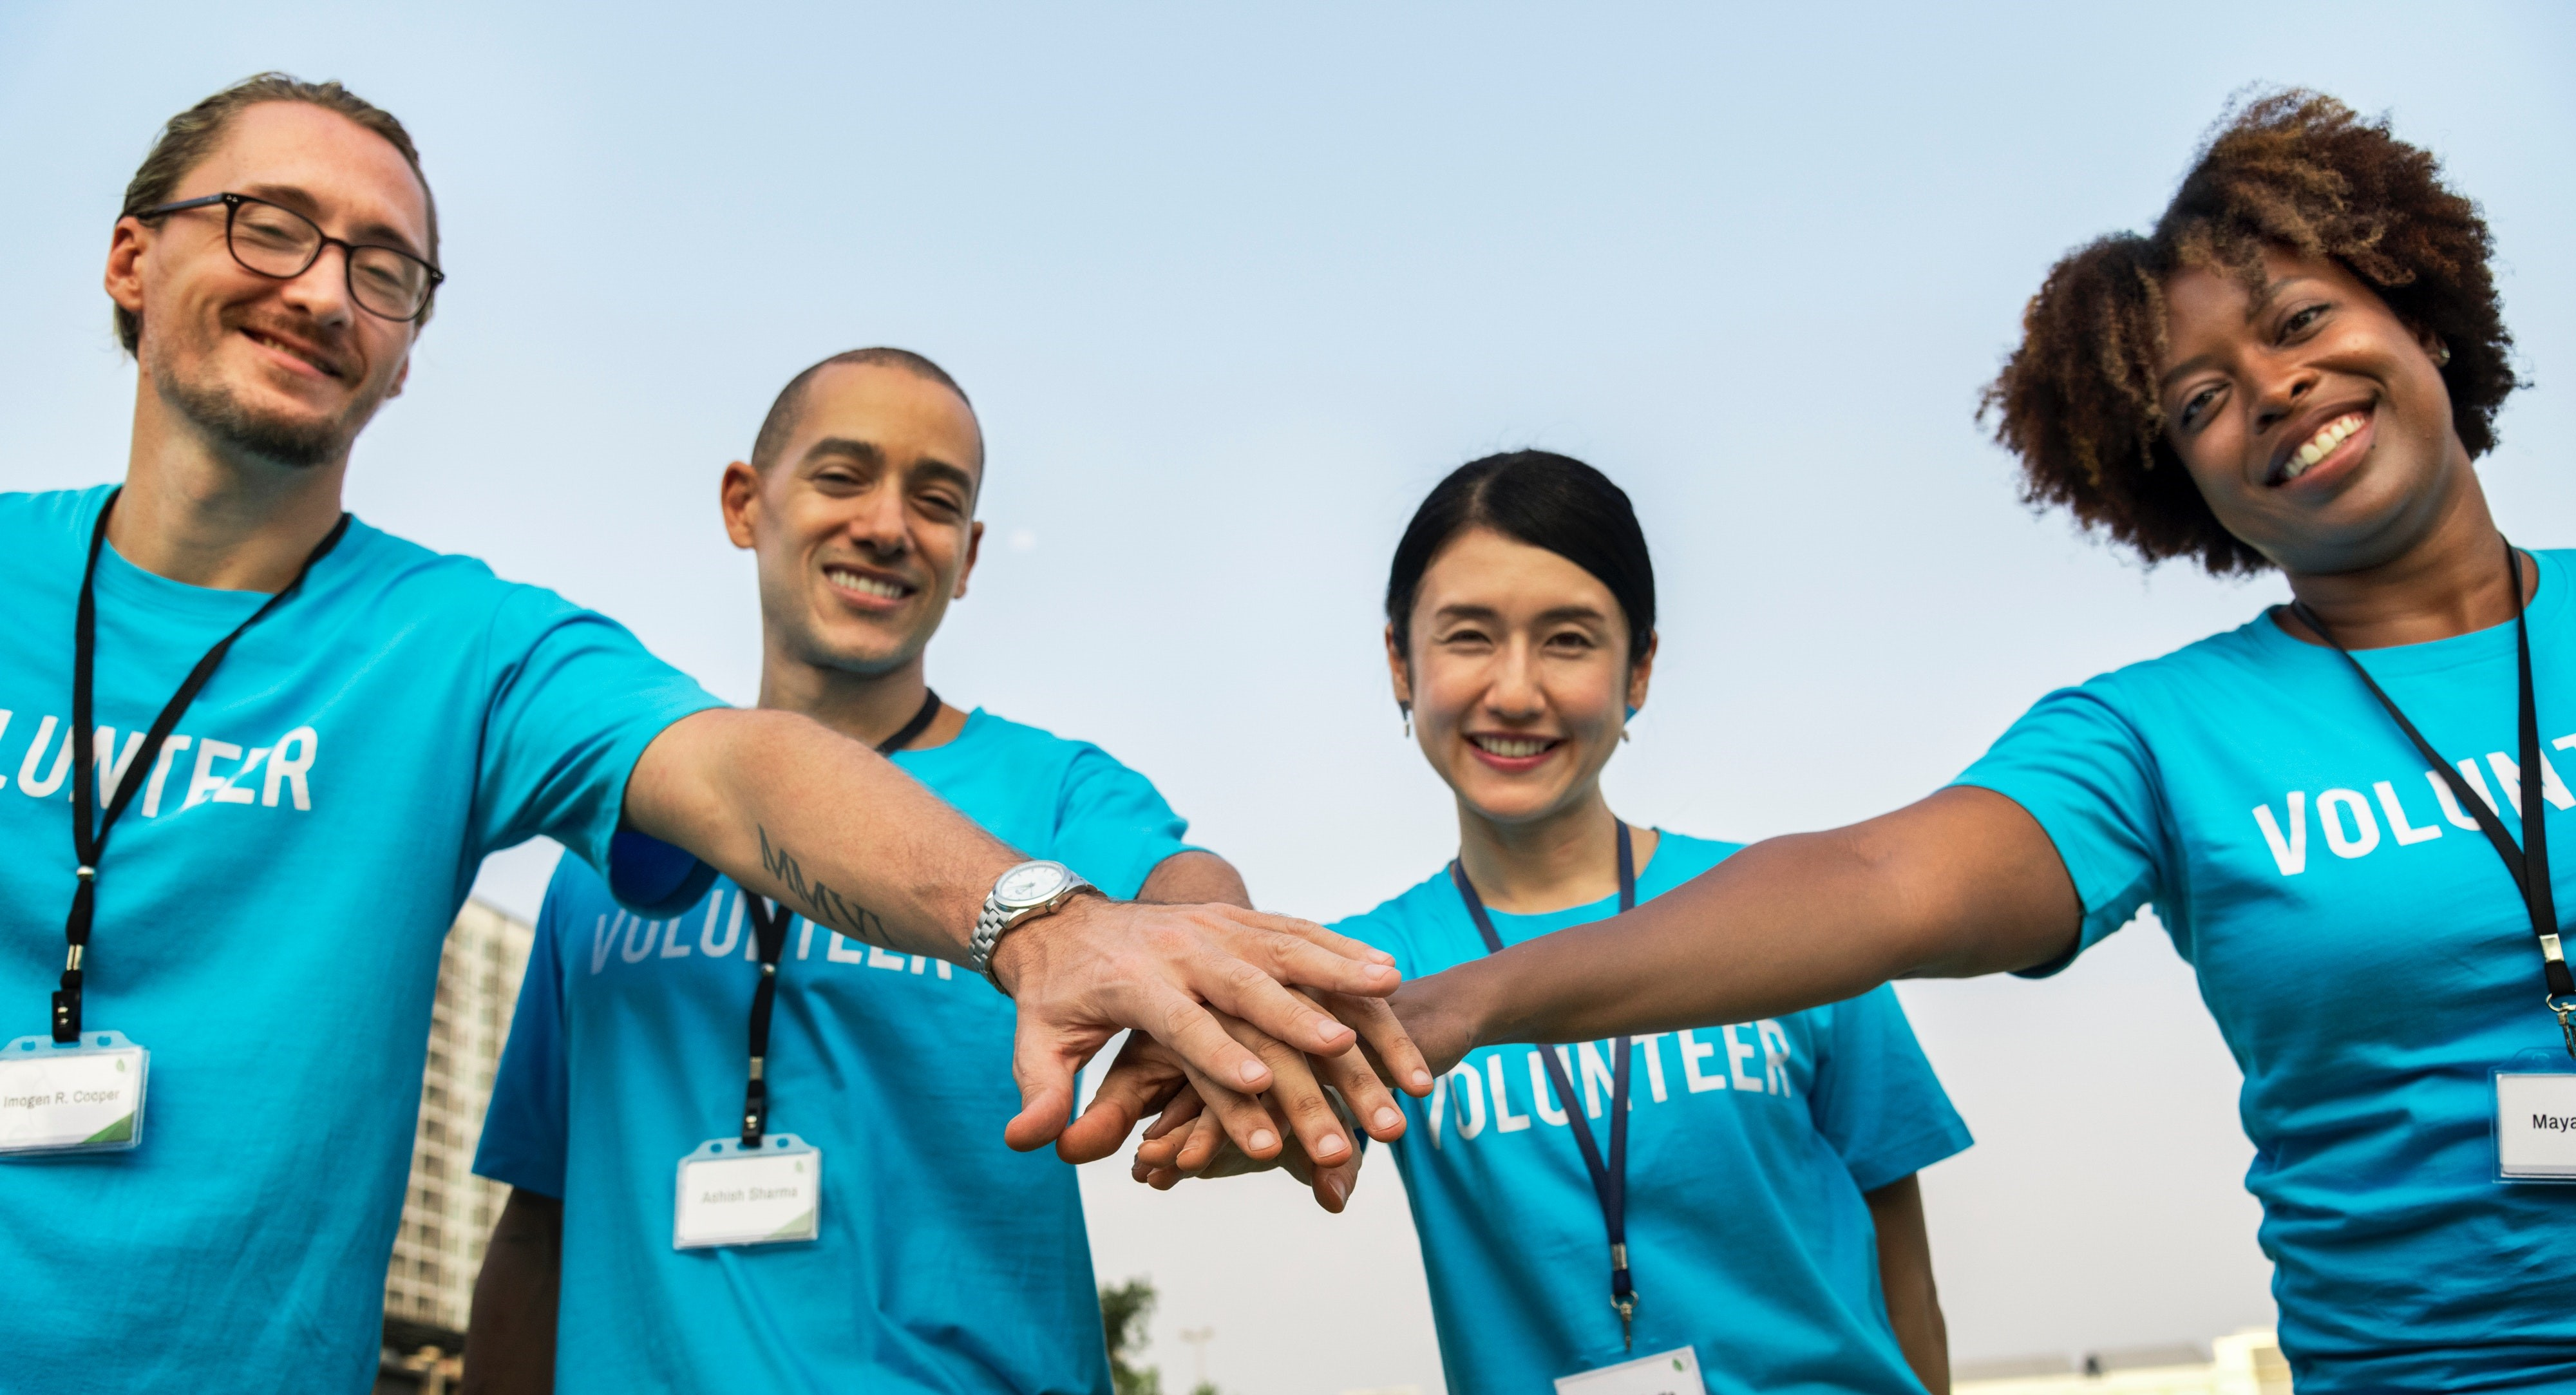 Volunteers Hands In